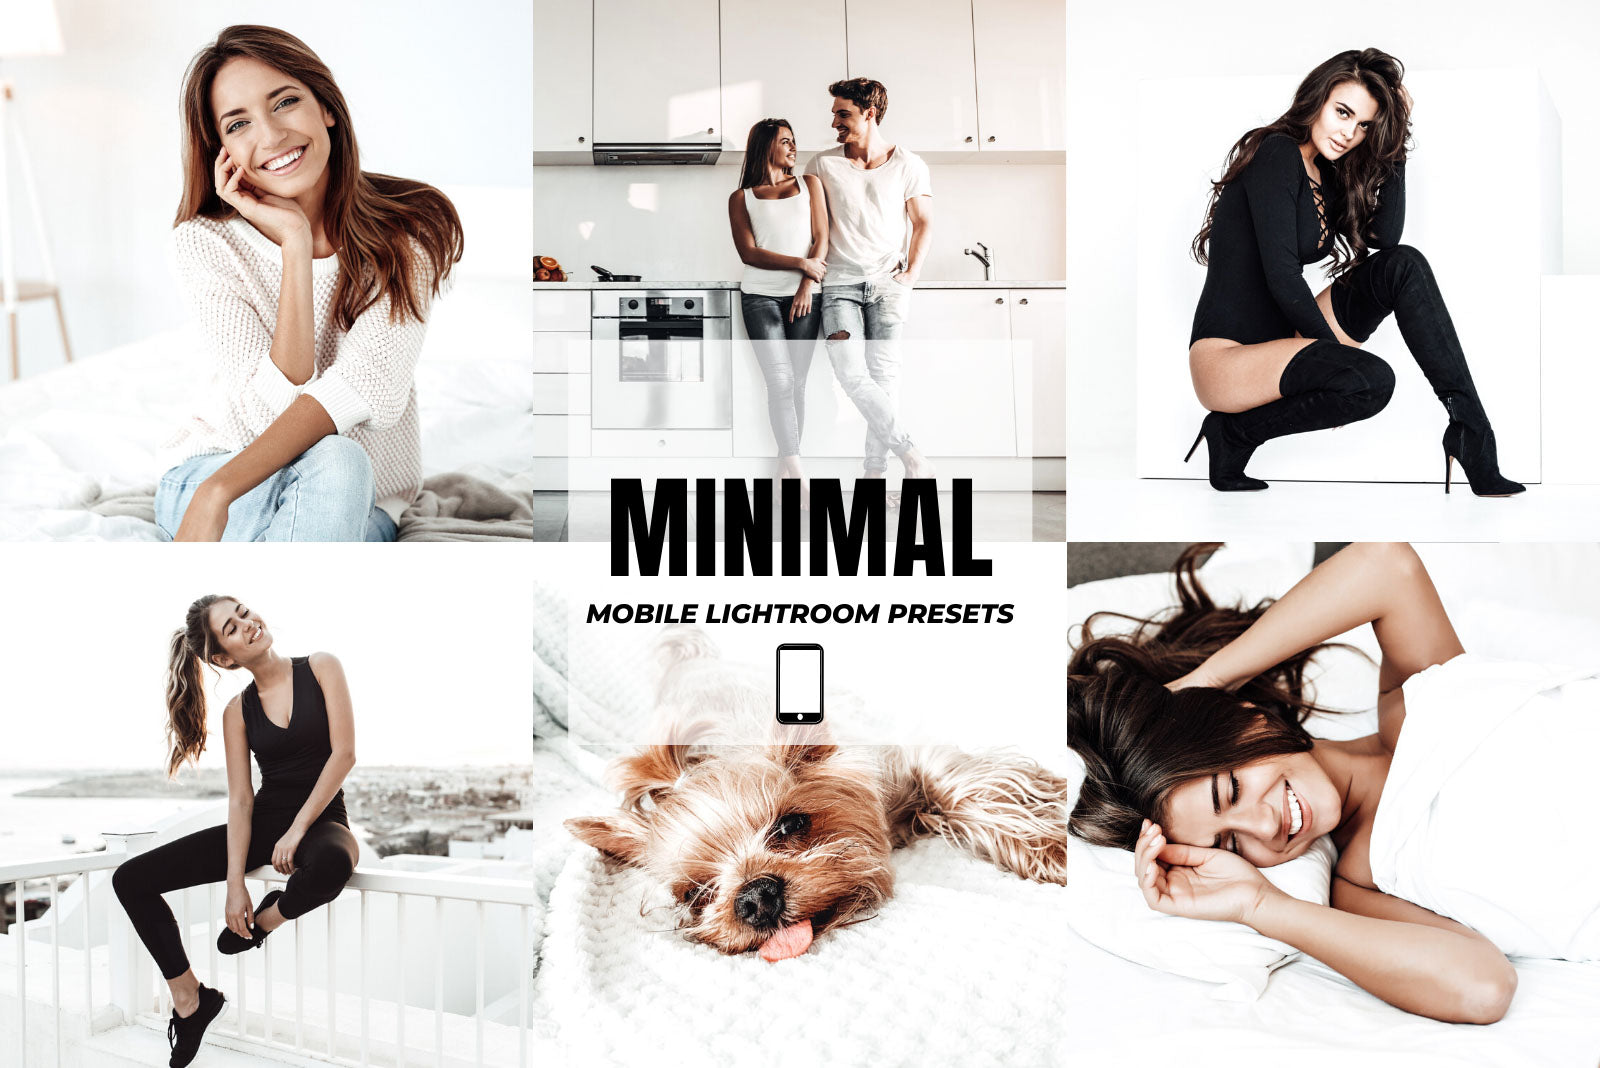 MINIMAL MOBILE LIGHTROOM PRESETS by The Viral Presets